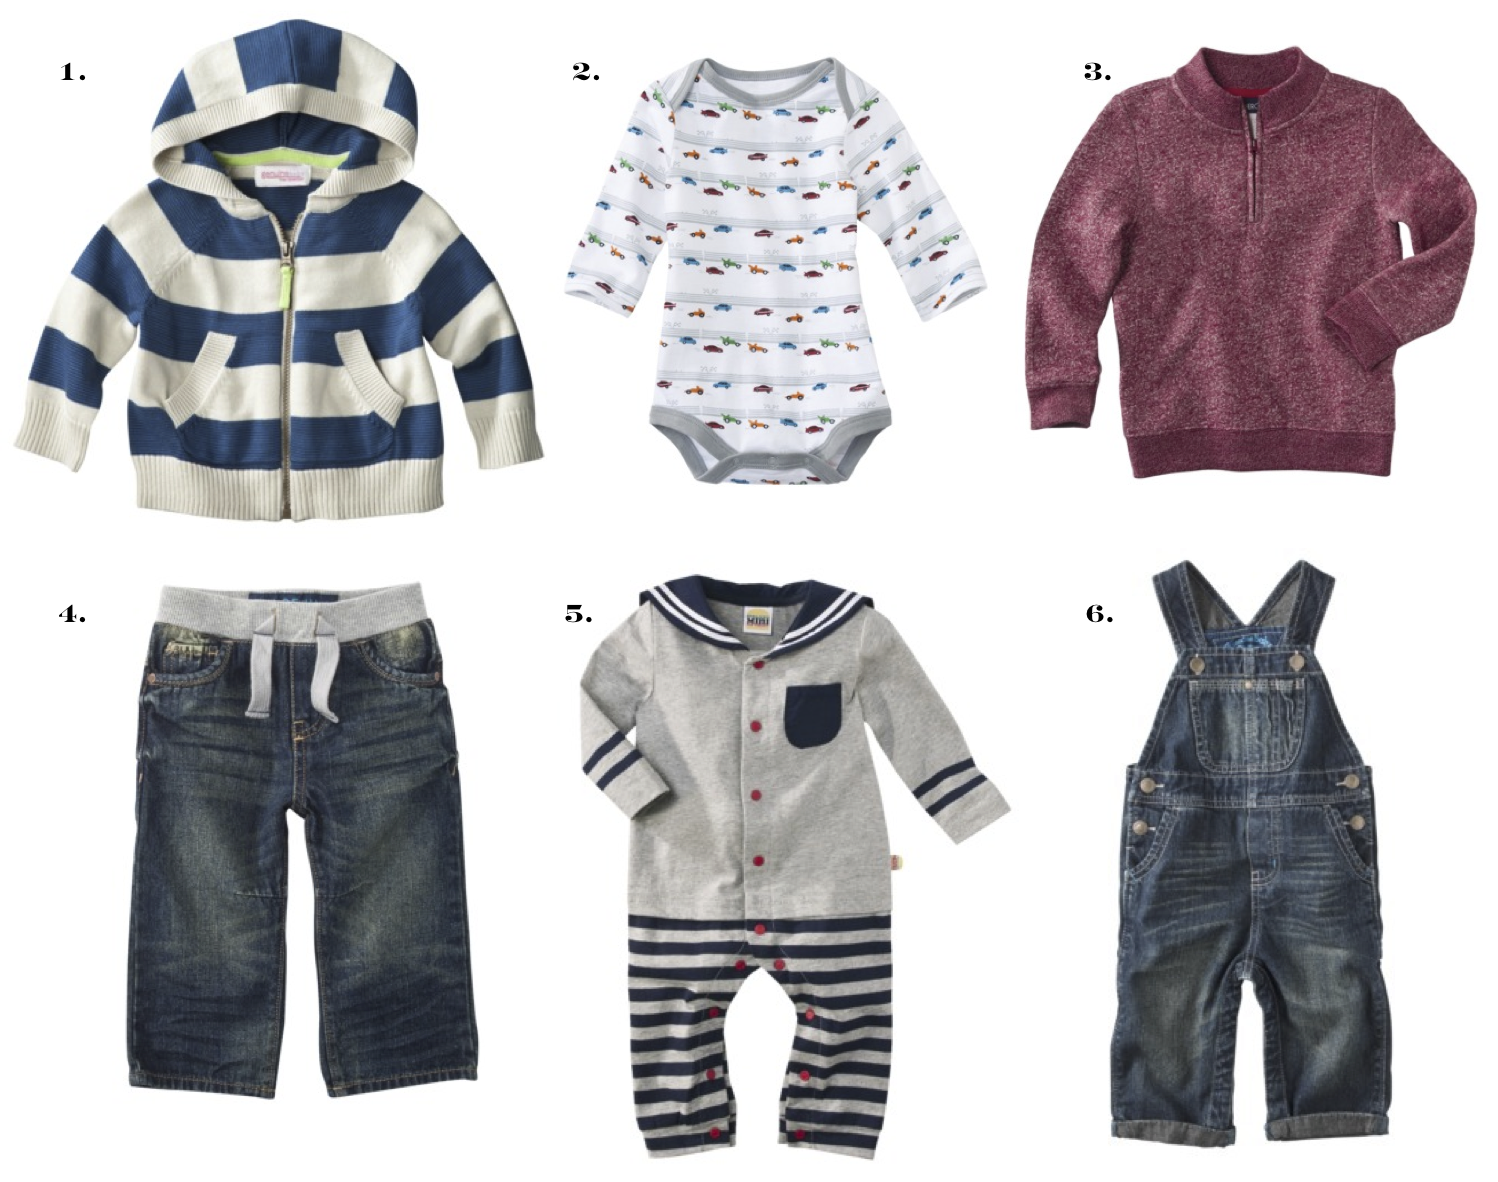 Outfits for Girls and Boys at Macy's come in a variety of sizes and styles. Shop Outfits for Girls and Outfits for Boys at Macy's and find top brands in all sizes.